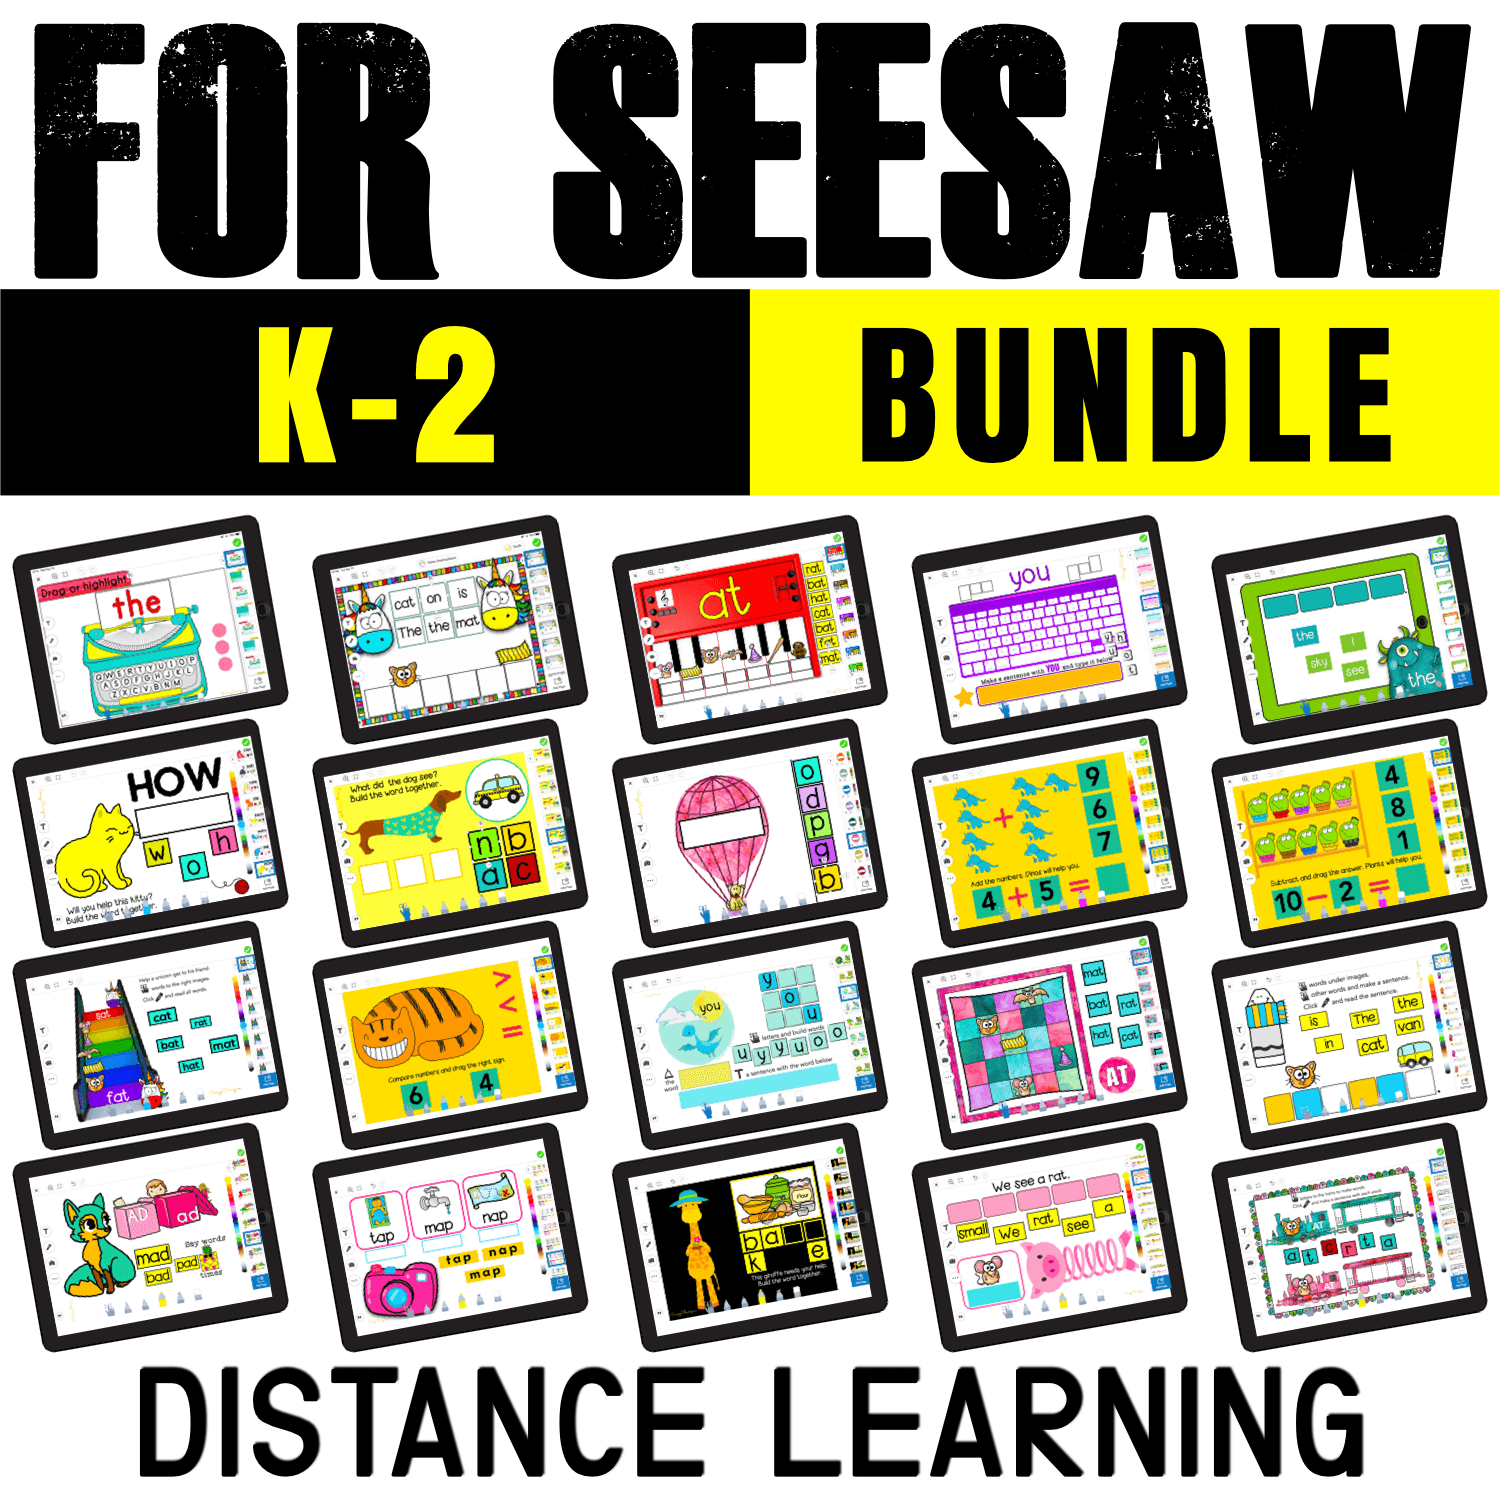 If you can't use Google Slides because kids don't have a Google account and can only use Seesaw, check out this growing bundle of activities specifically created for Seesaw.